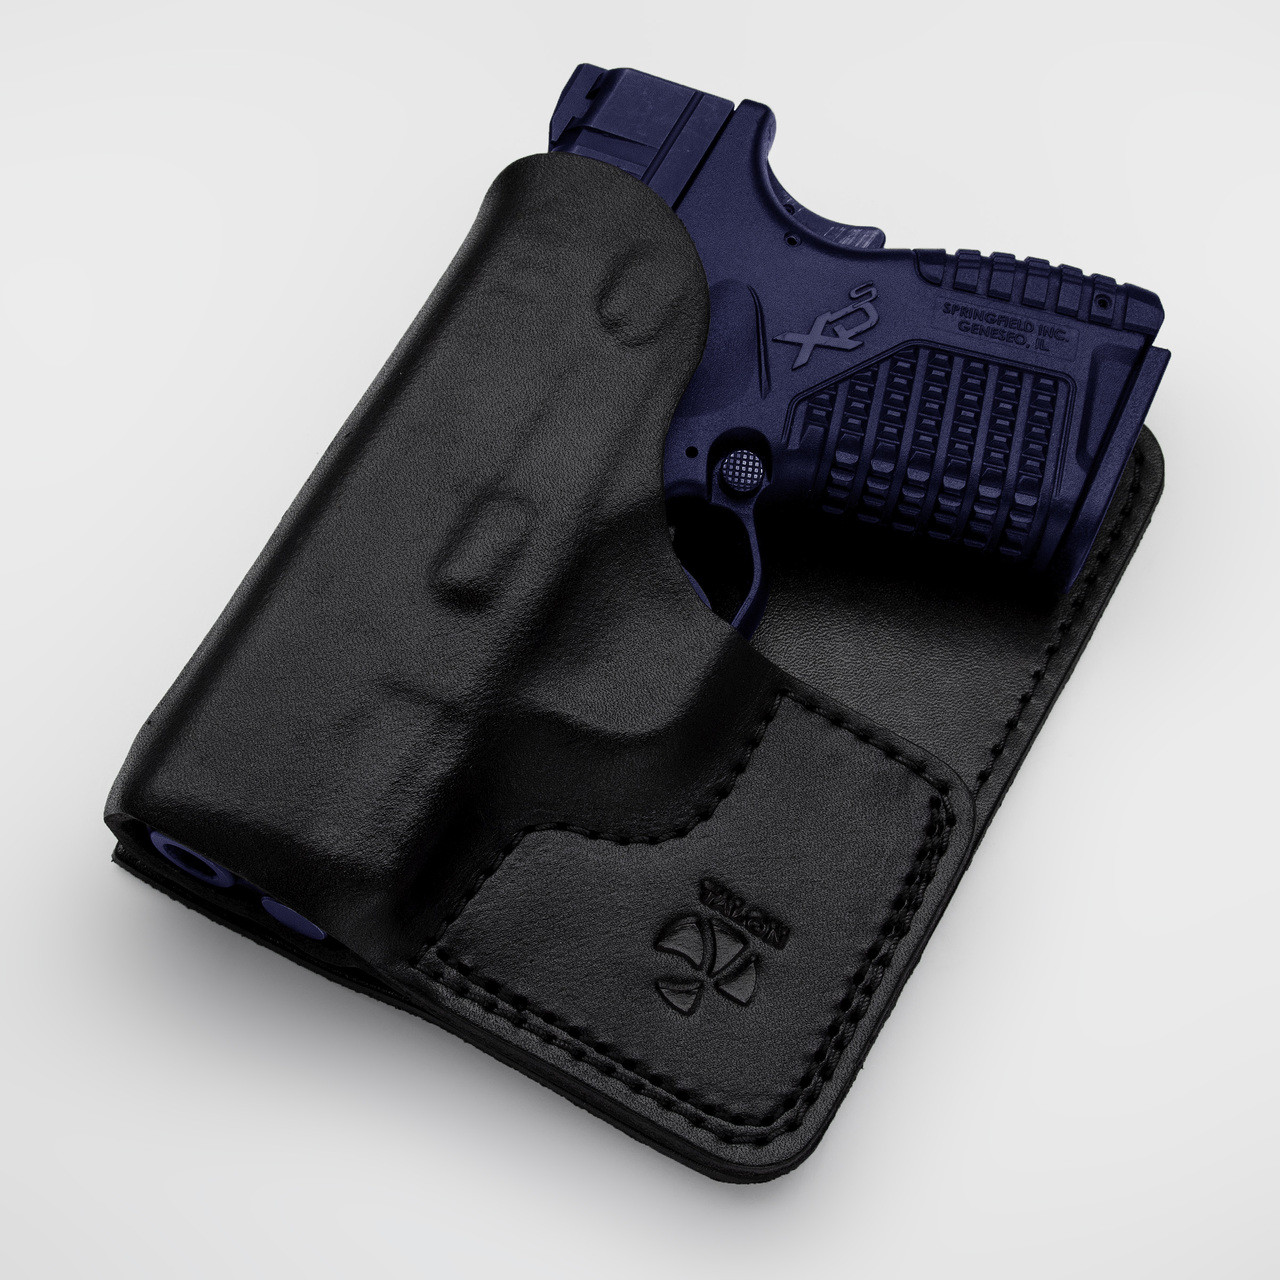 Talon Springfield XDS-45, XDS-9 and SCCY CPX Cargo Pocket Holster